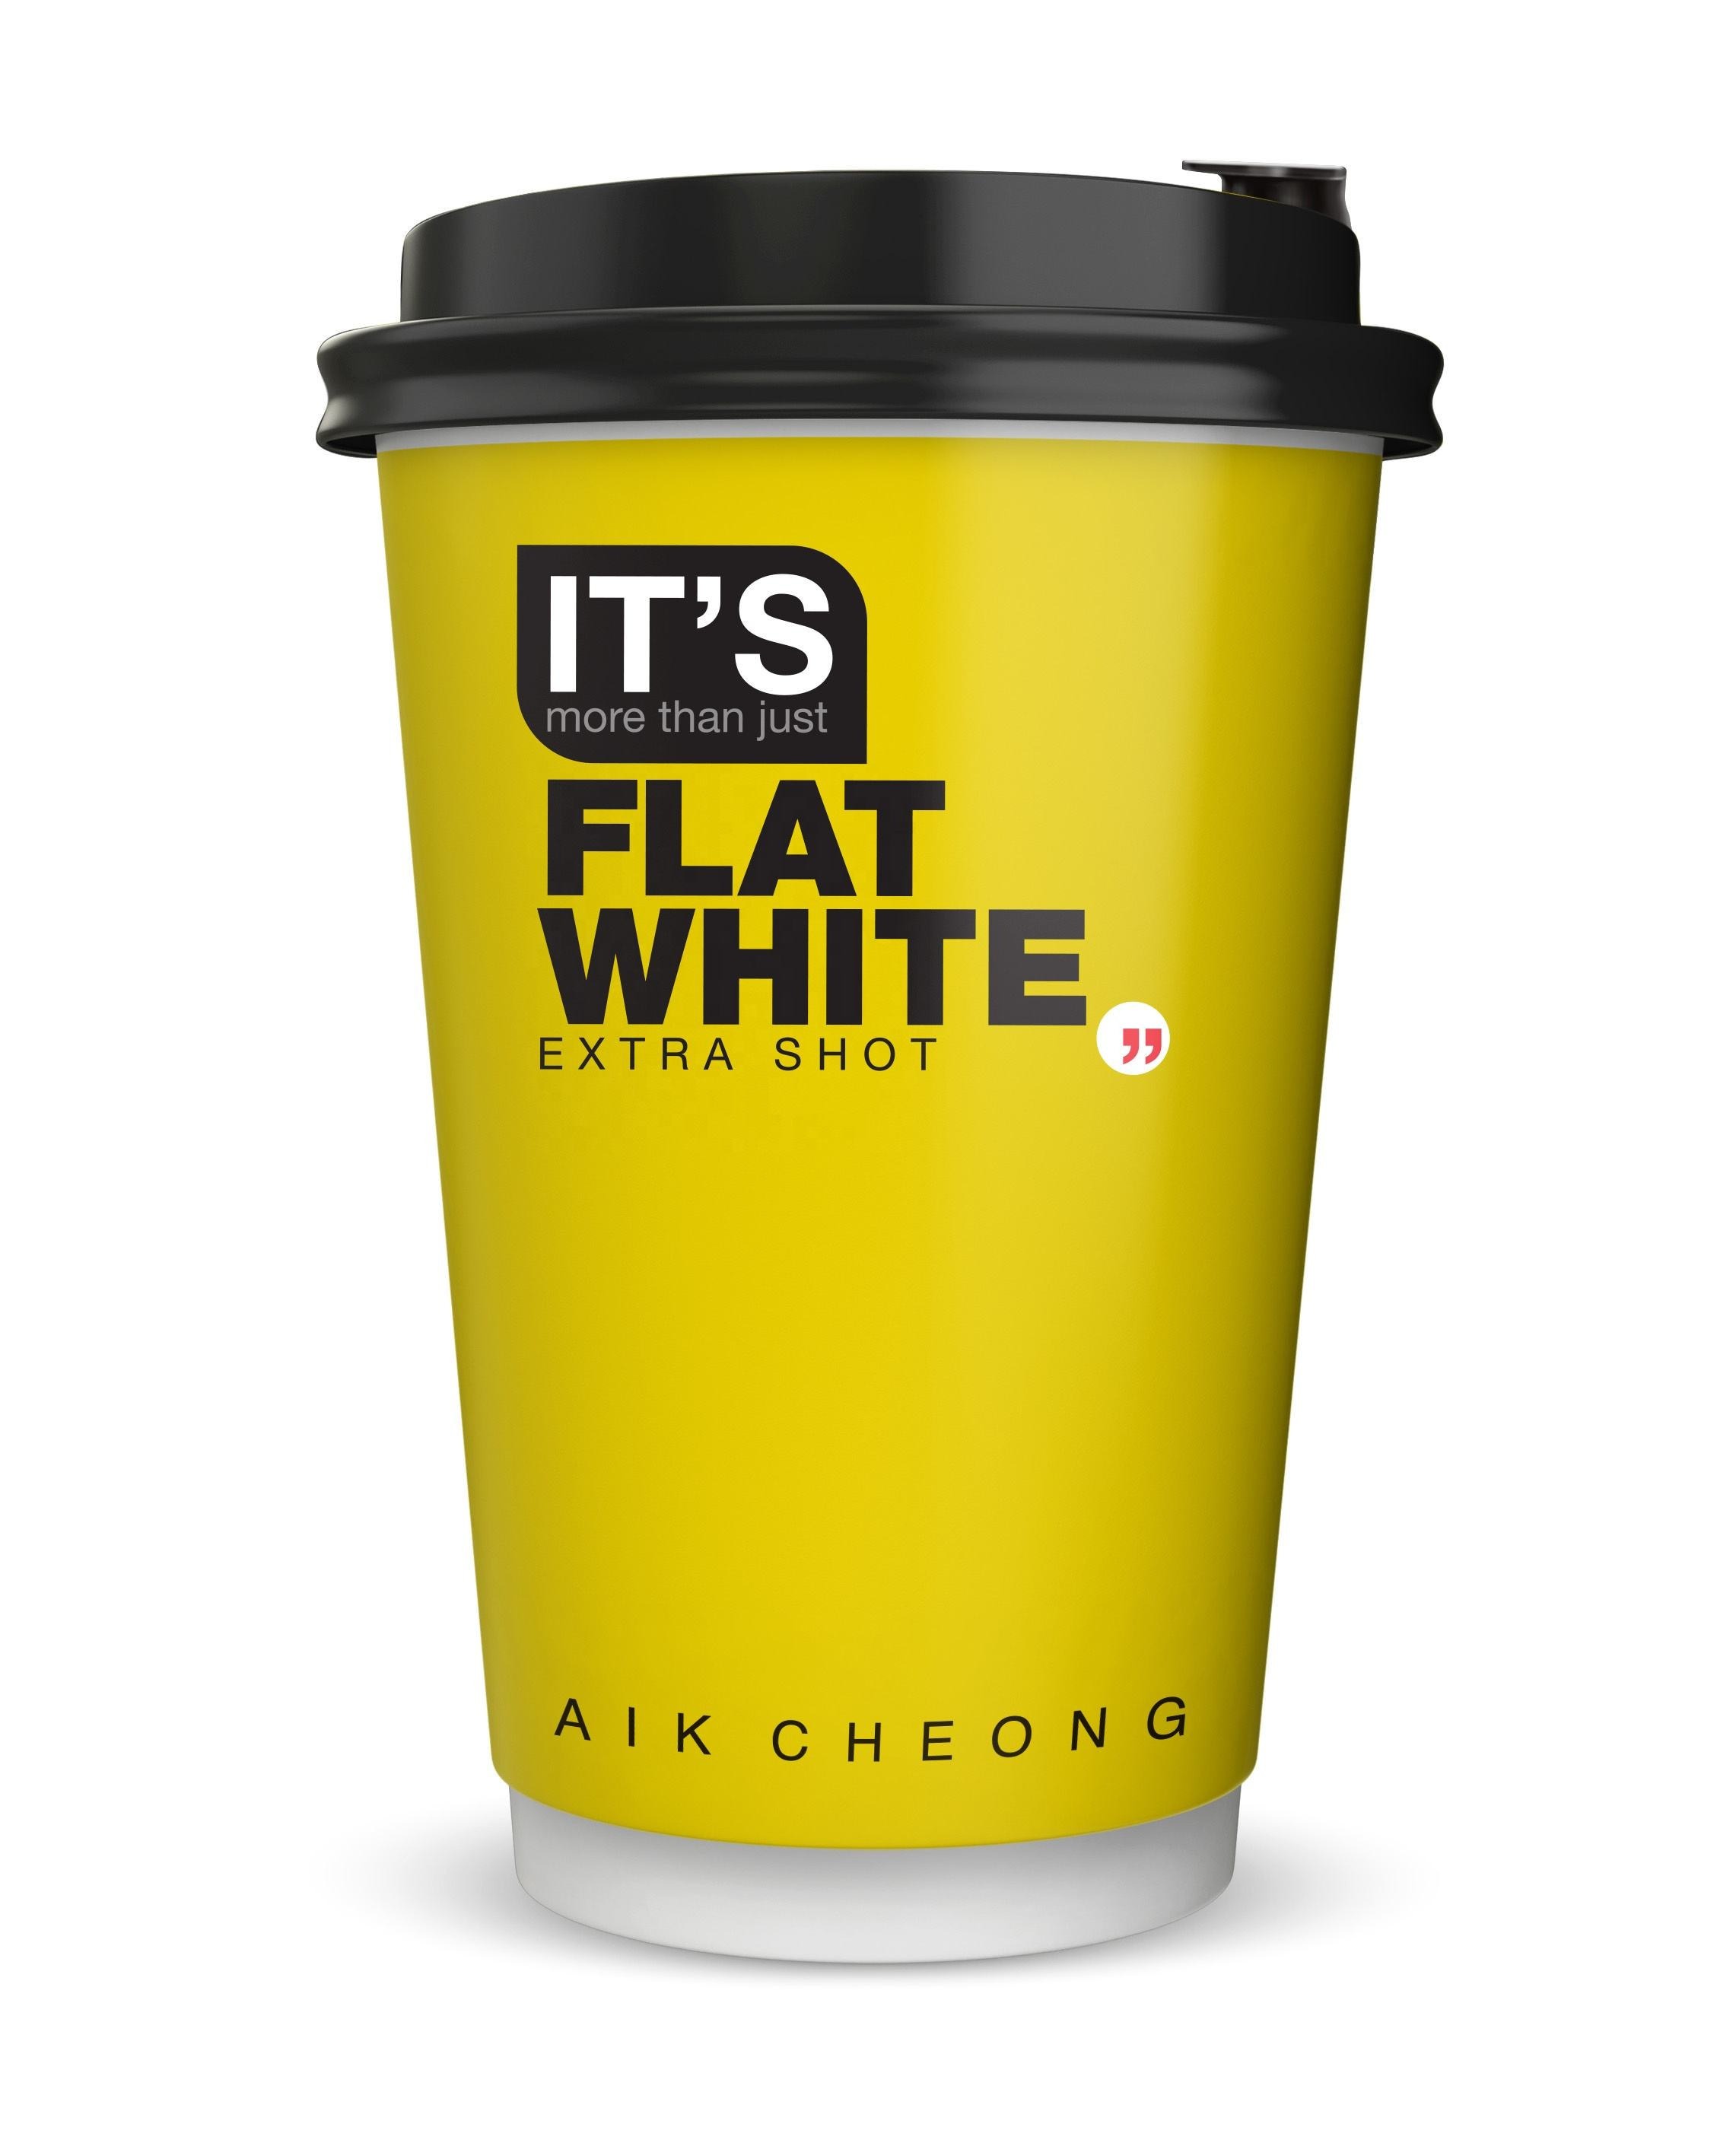 Aik Cheong Instant Coffee Flat White with Extra Shot Premix Drink (Its More Than Just) Malaysia (Grab & Go Cup)